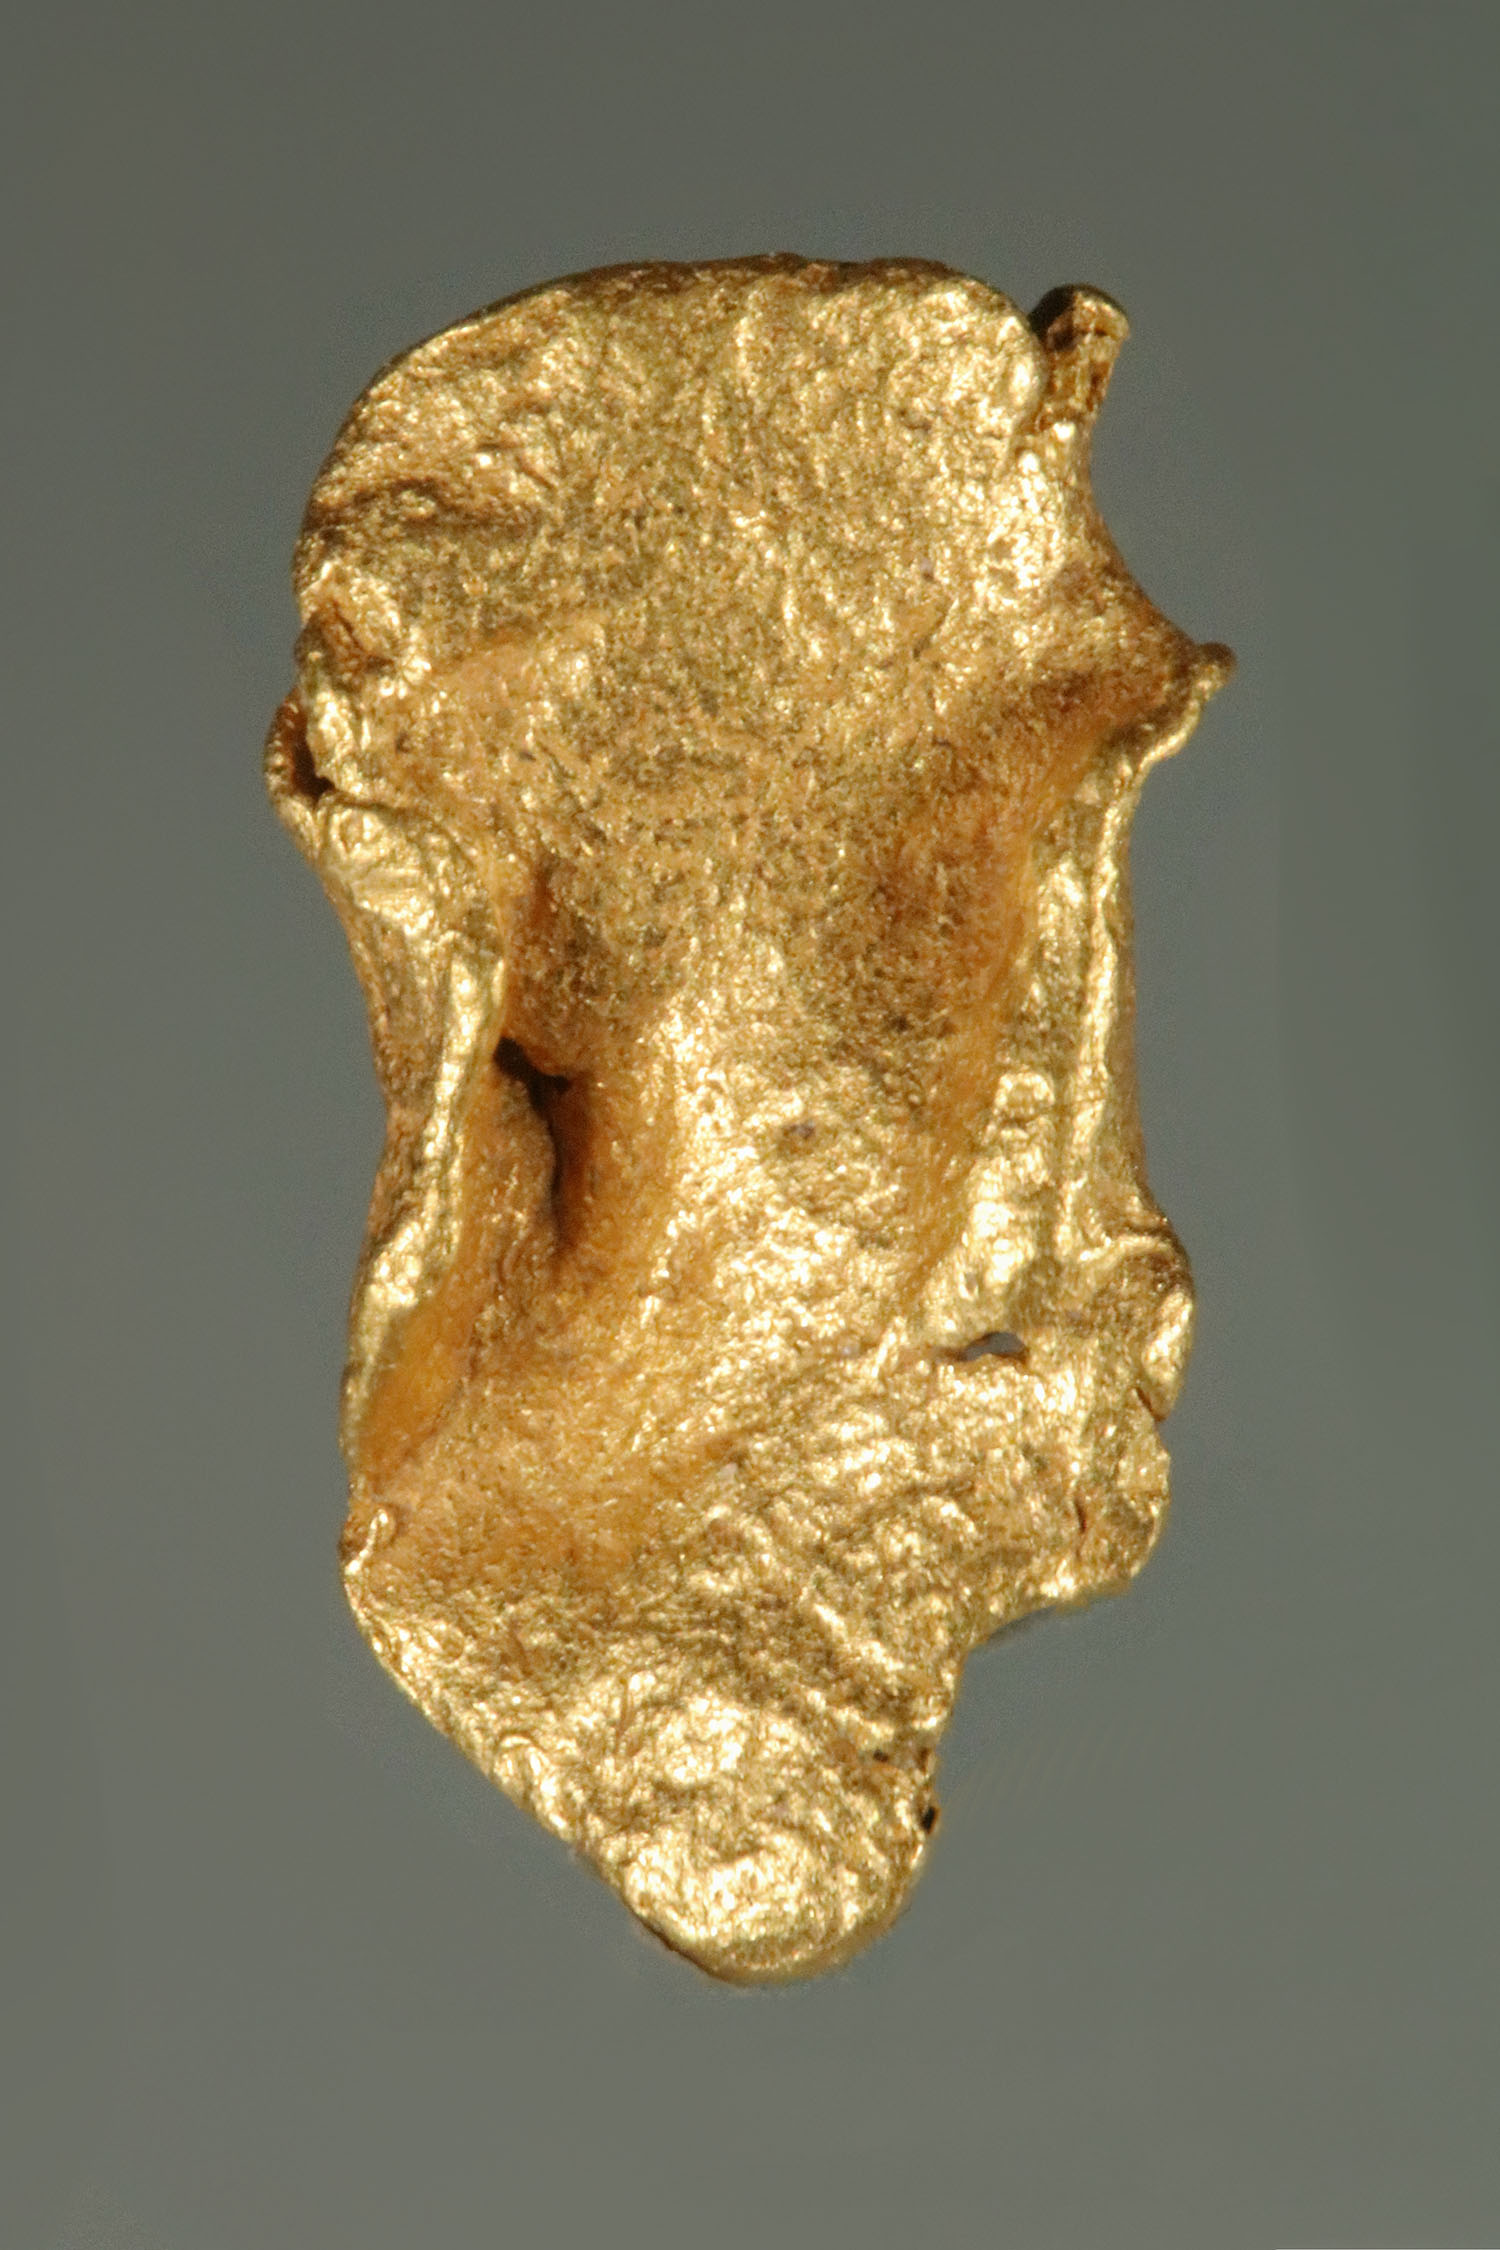 Curved Plate Gold Nugget from Colorado